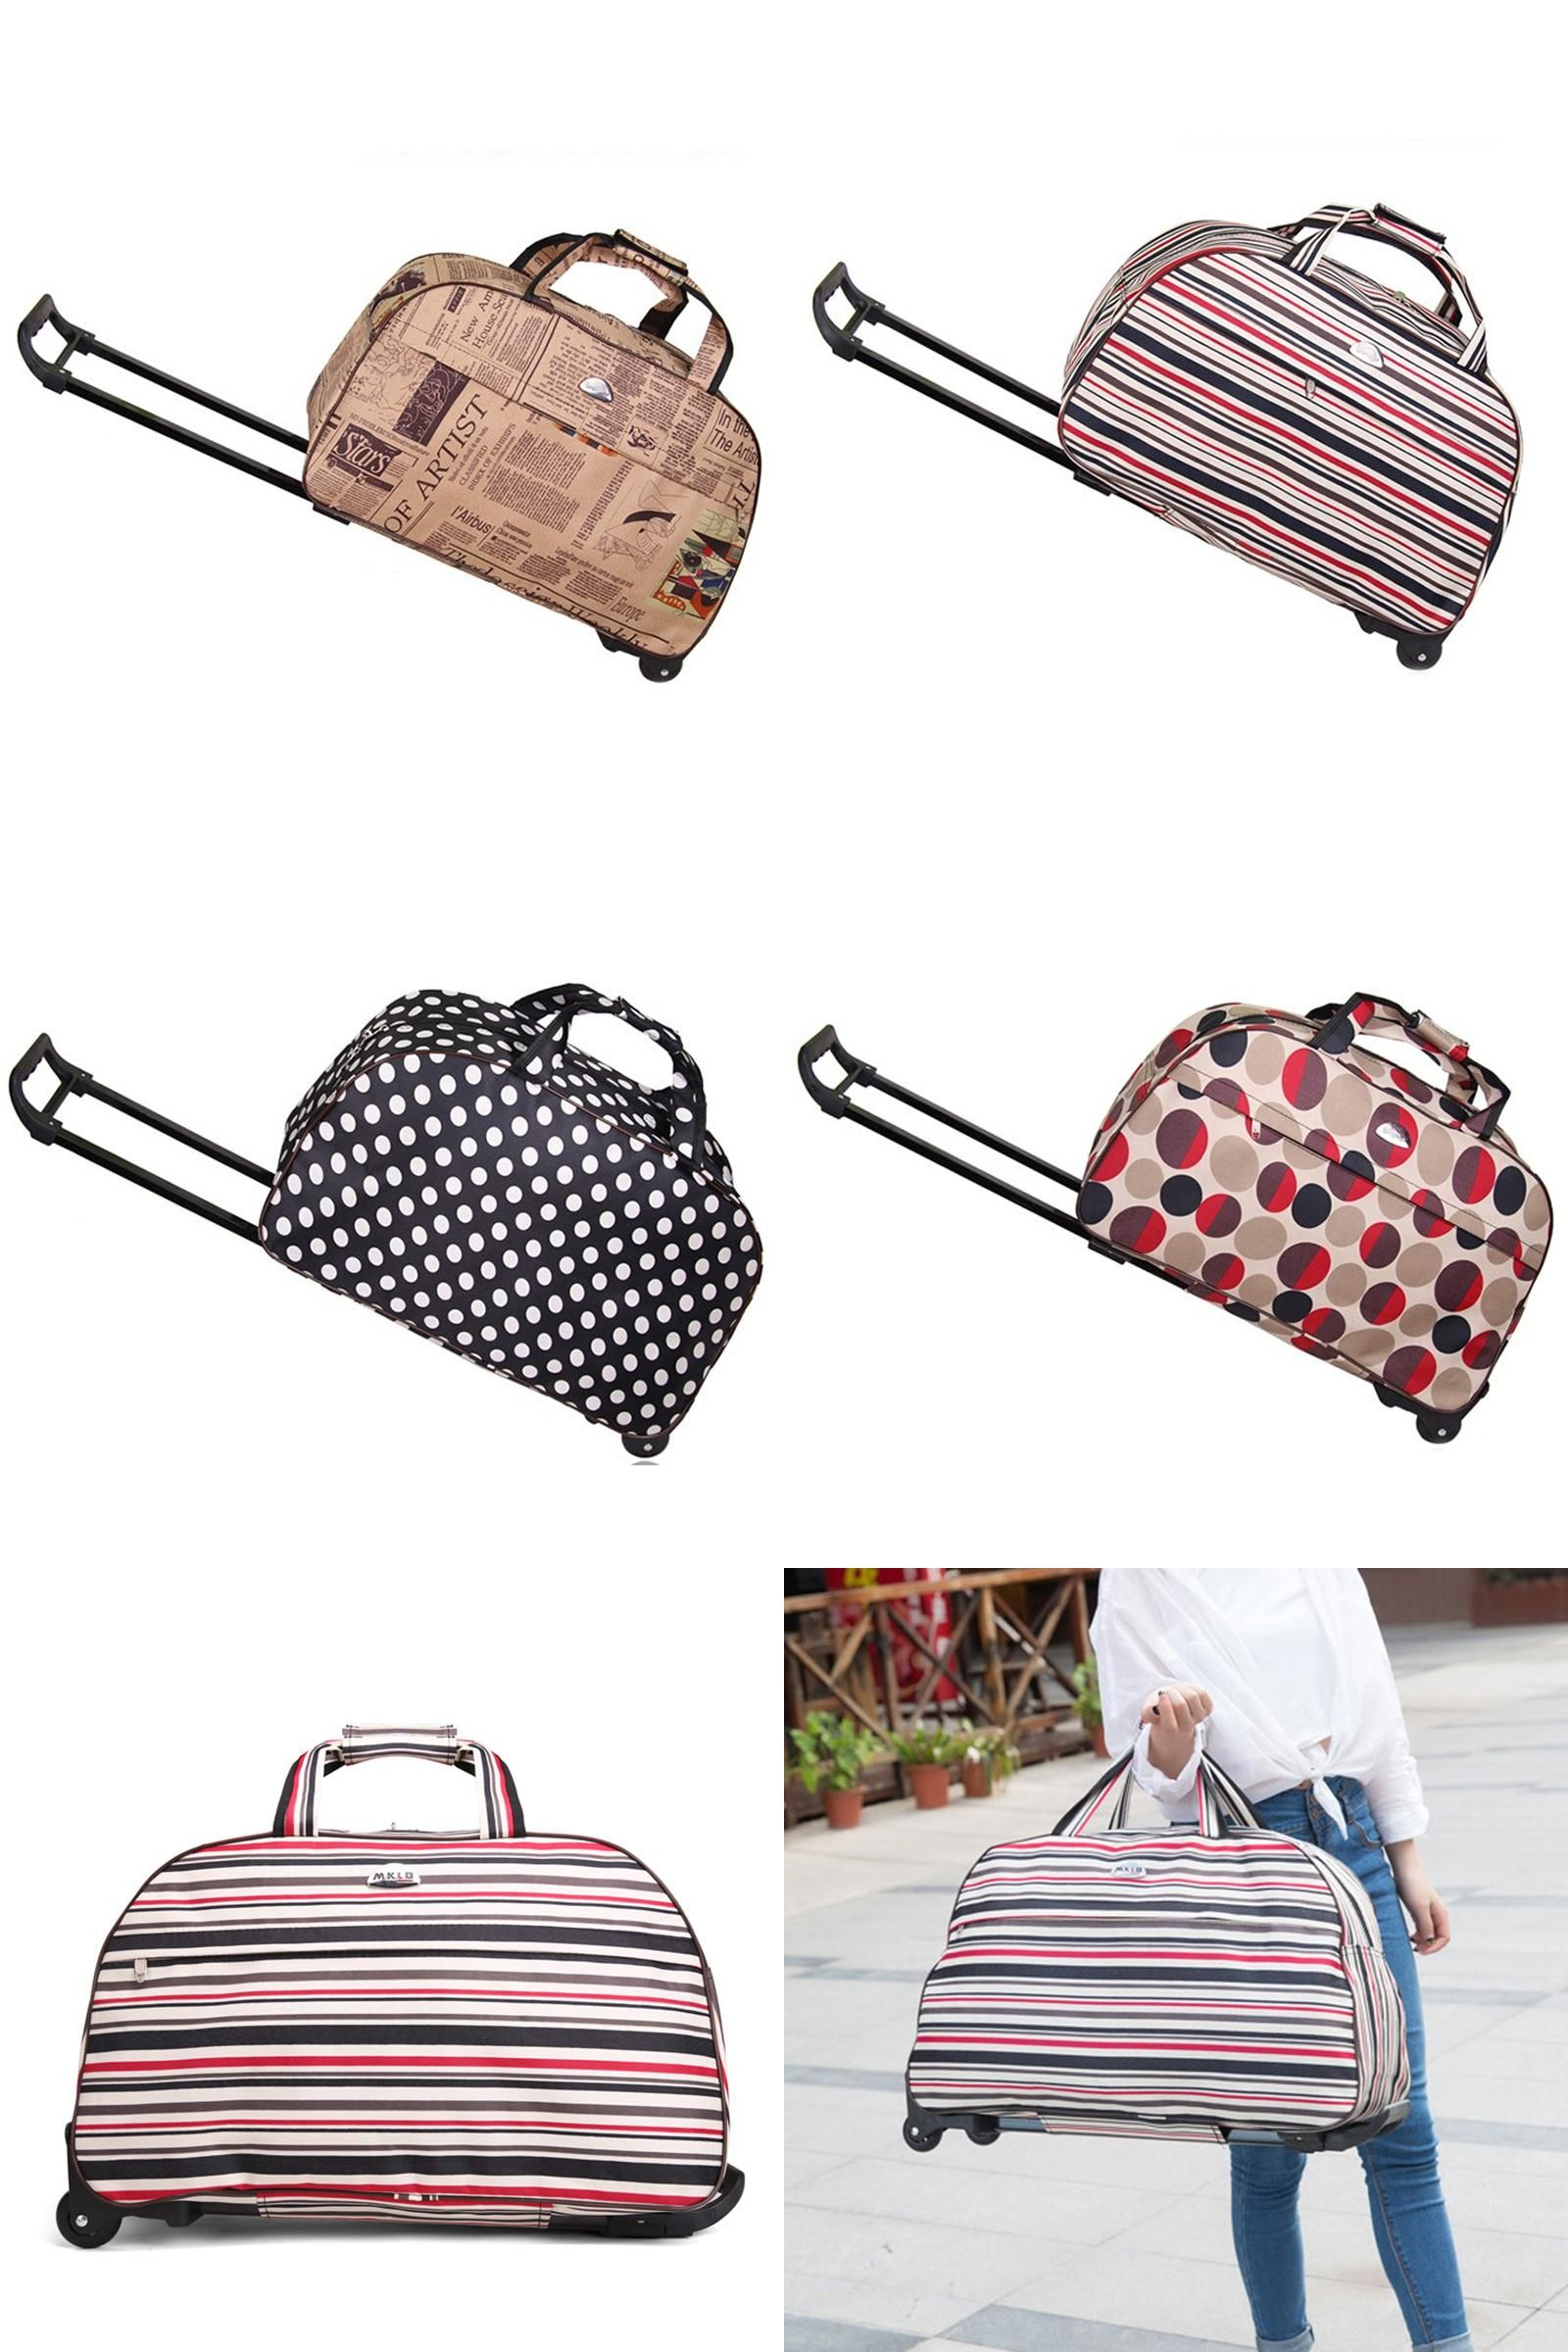 e167a91192  Visit to Buy  Rolling Luggage Travel Bag On Wheels Trolley Luggage  Shopping Travel Suitcases